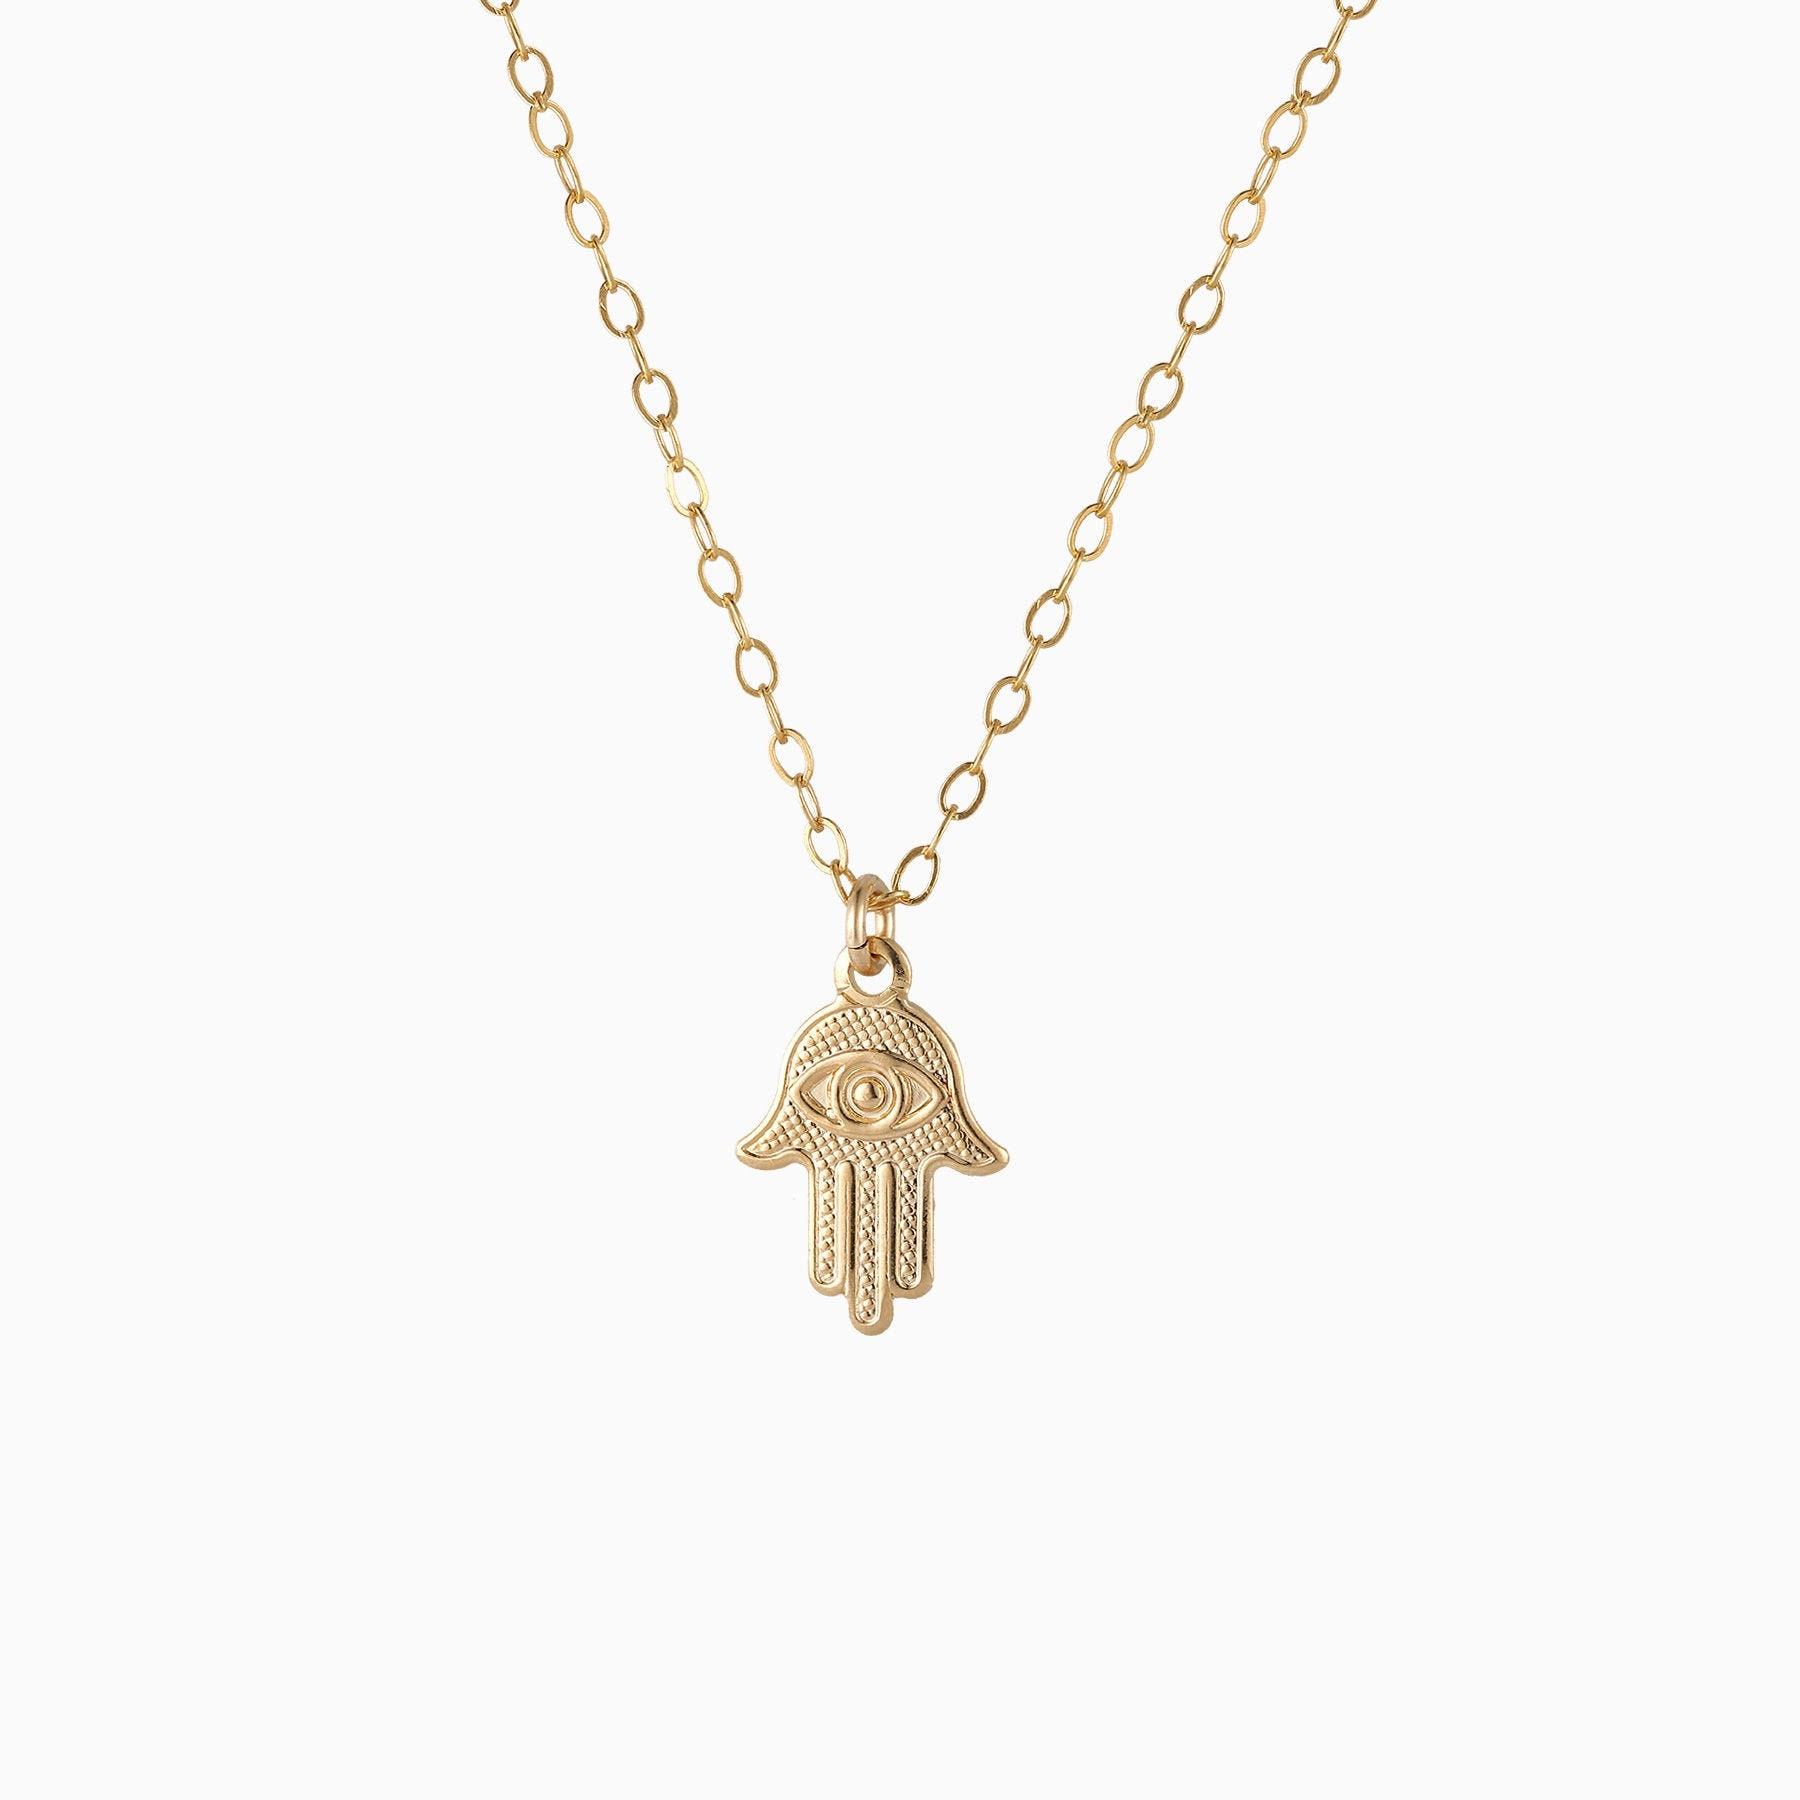 14k gold filled necklace filigree necklace hamsa hand Charm necklace protection good luck necklace charm necklace Evil eye necklace